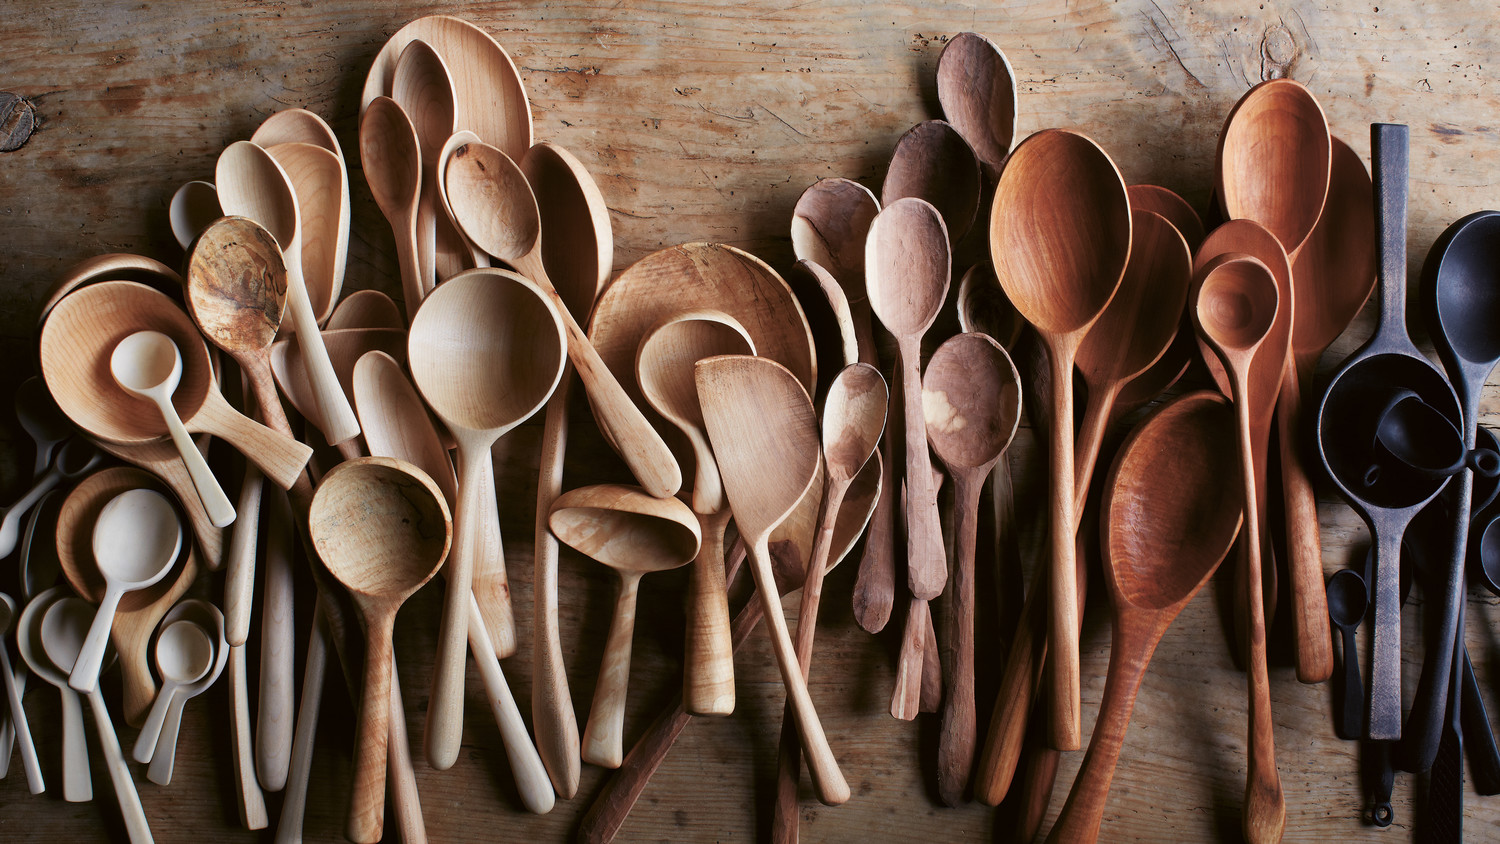 Wood Carving The Secrets To Making Your Own Kitchen Tools